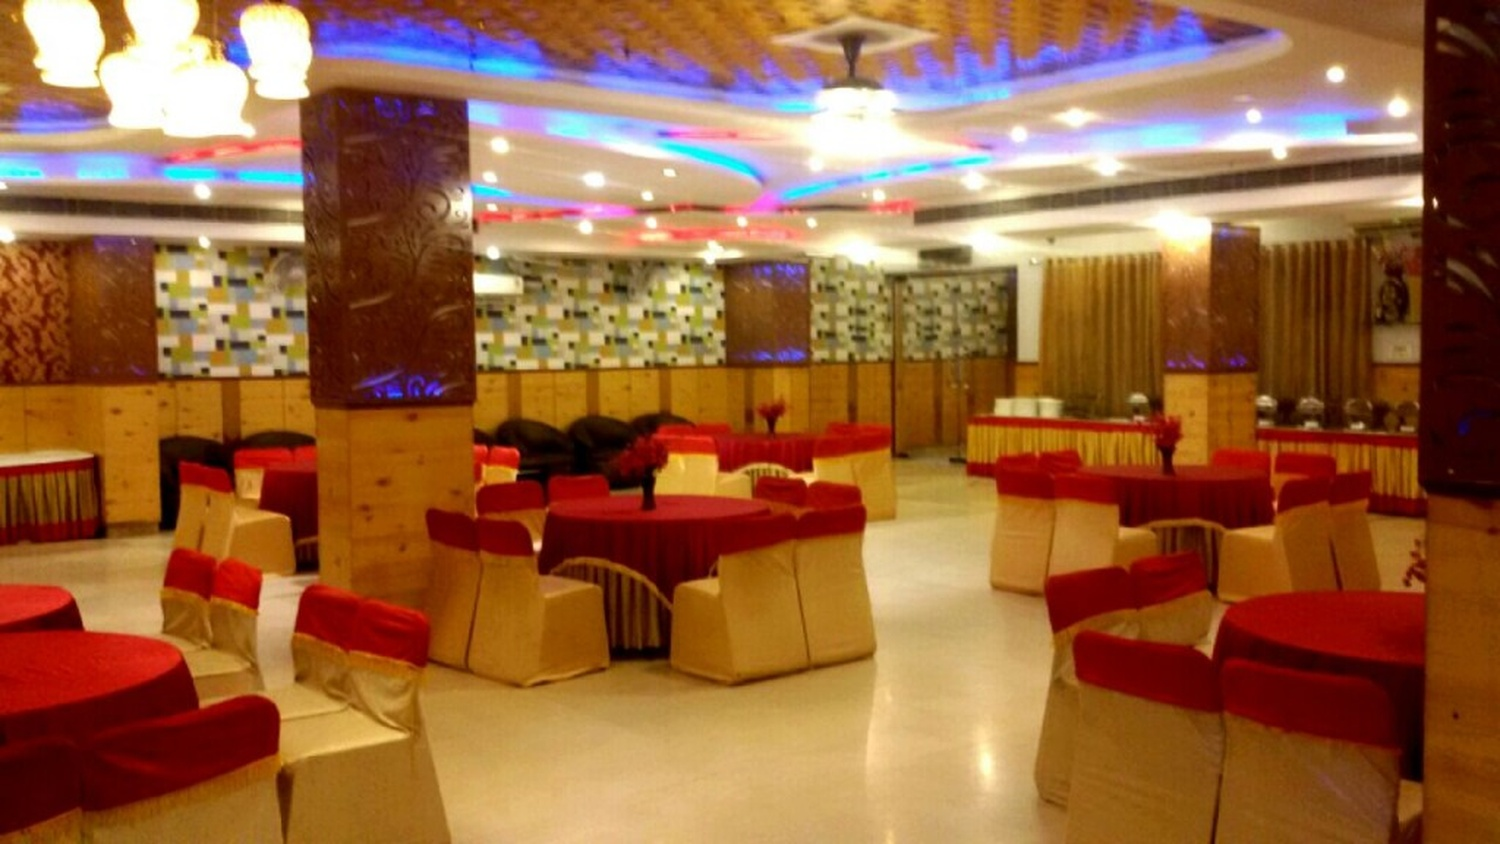 Feather party hall rohini delhi banquet hall for Afghan cuisine banquet hall